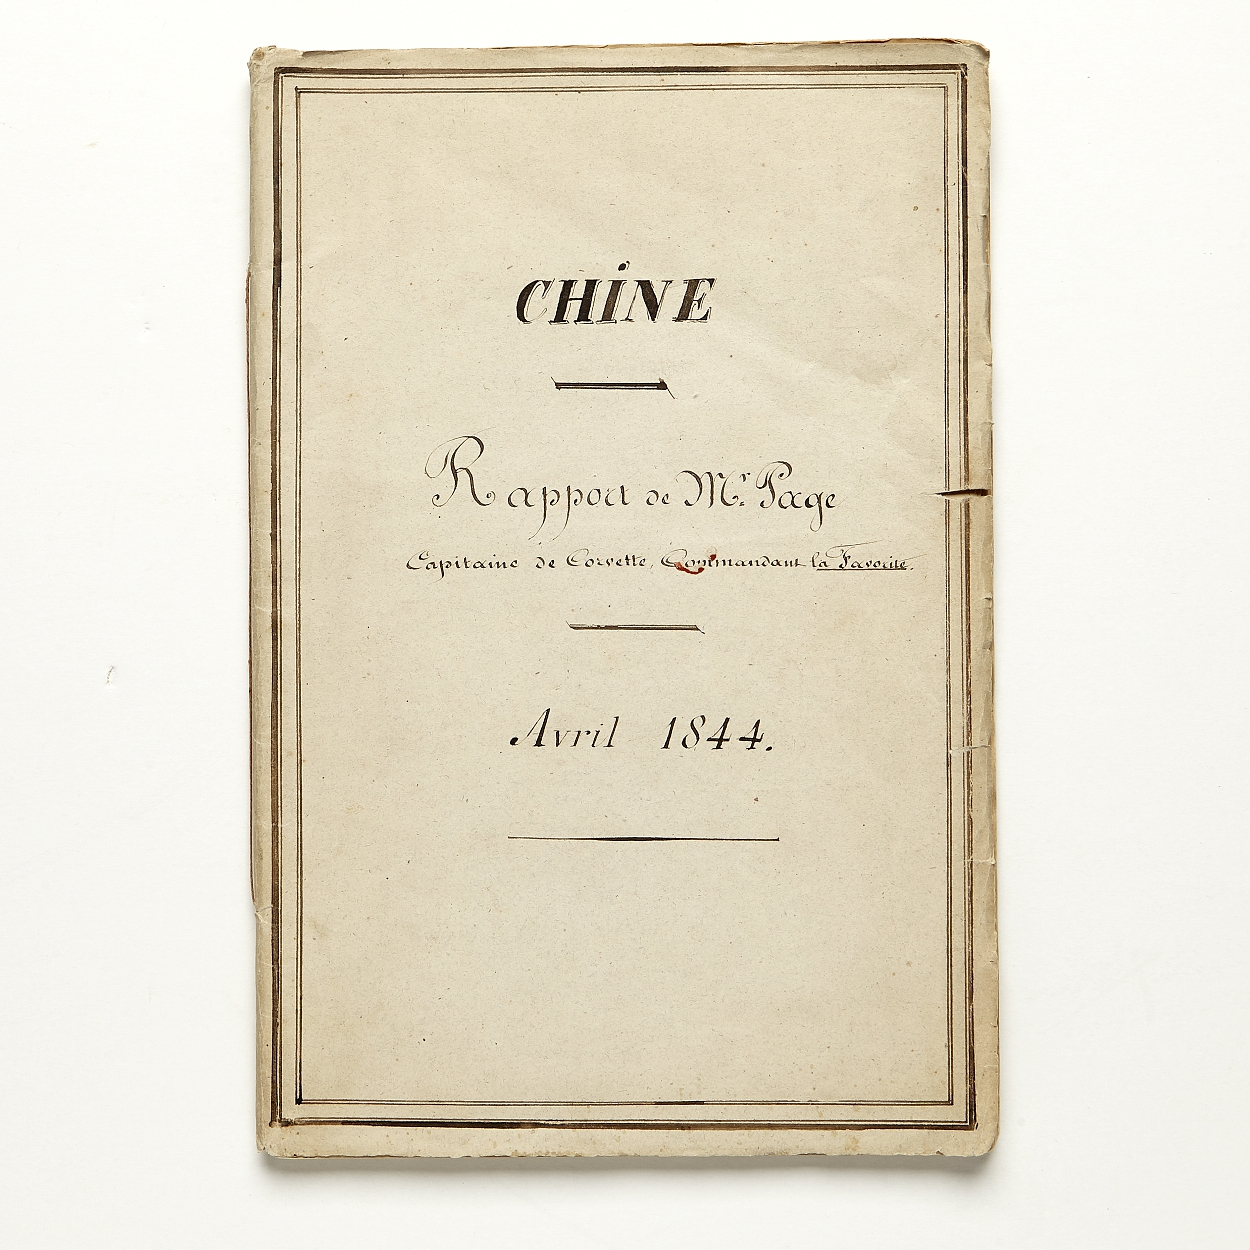 Captain Page's manuscript Report on China in 1844